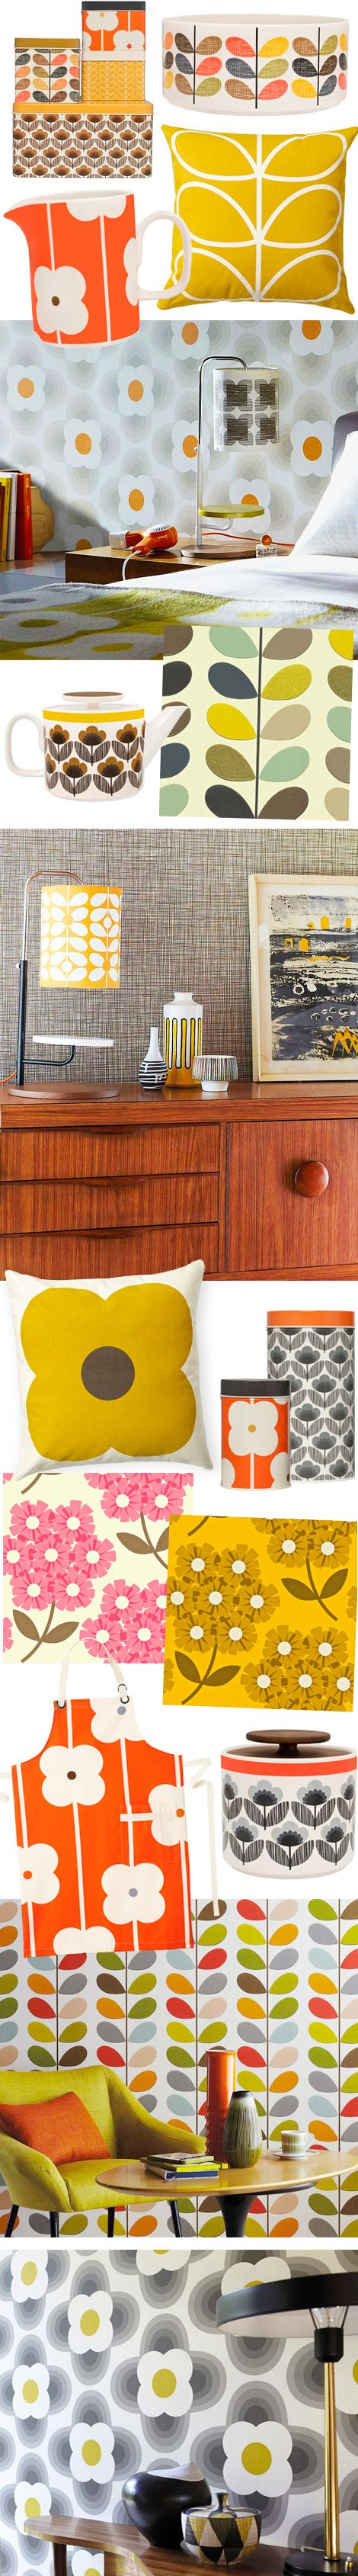 Orla Kiely's behangpapier en homeware collectie in België / www.woonblog.be